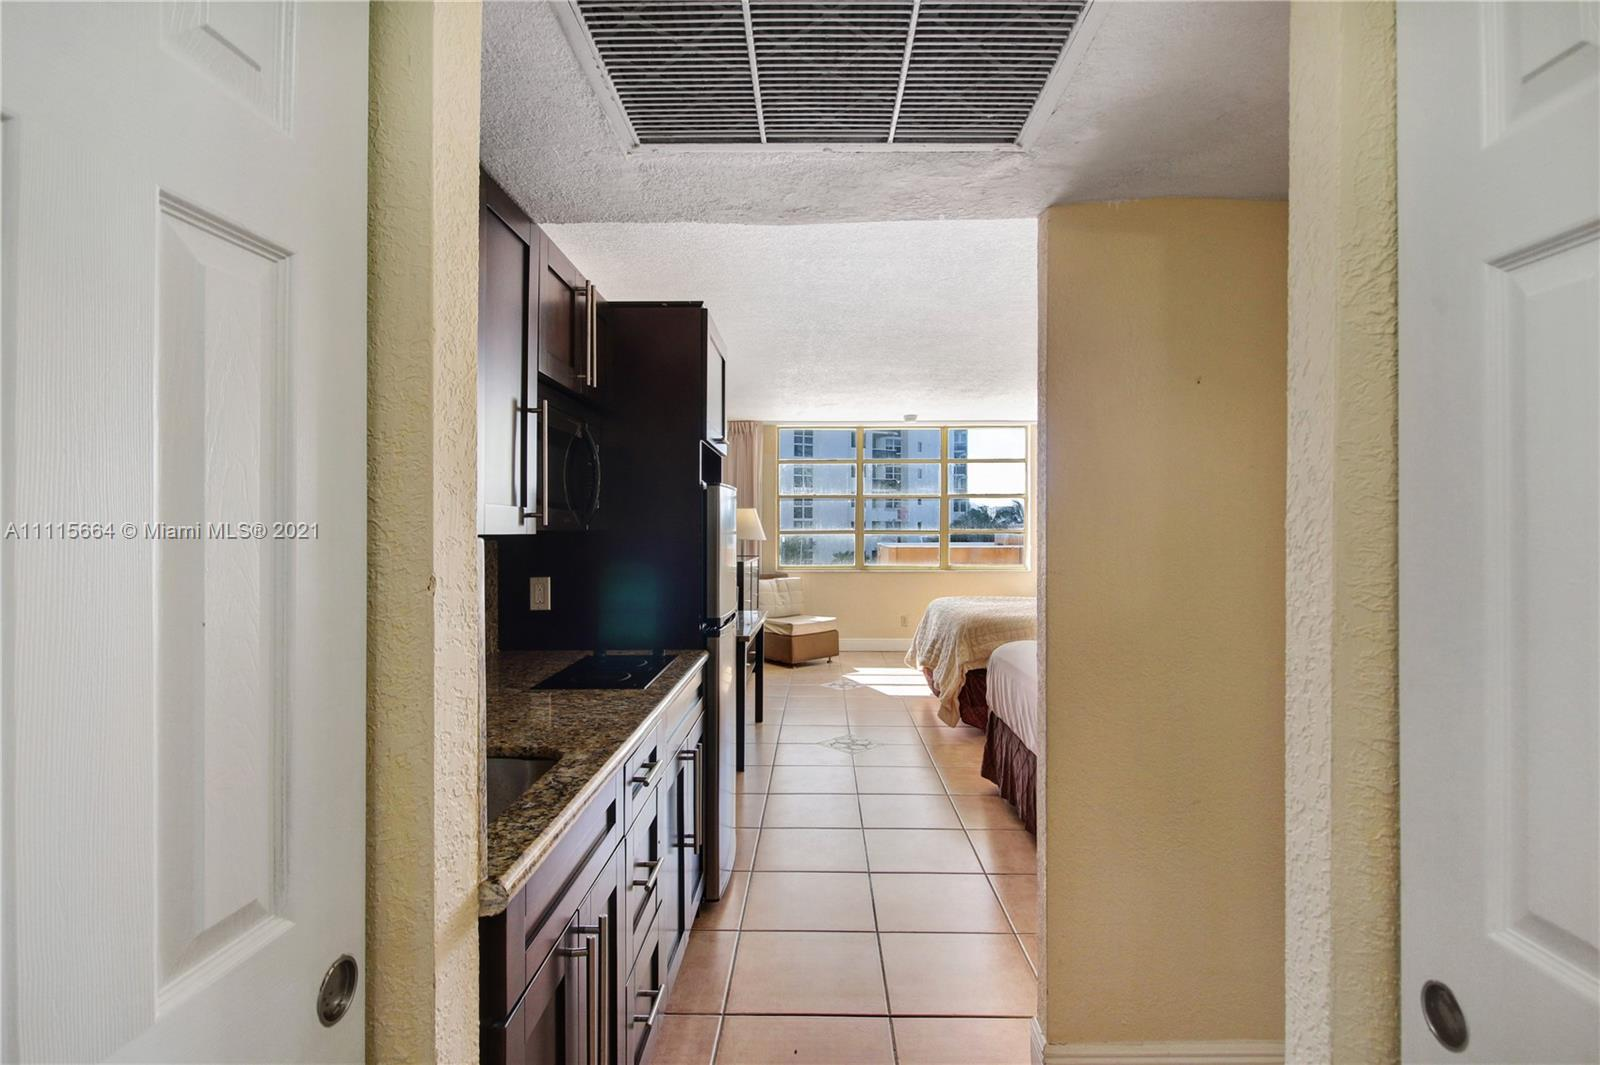 19201  Collins Ave #307 For Sale A11115664, FL